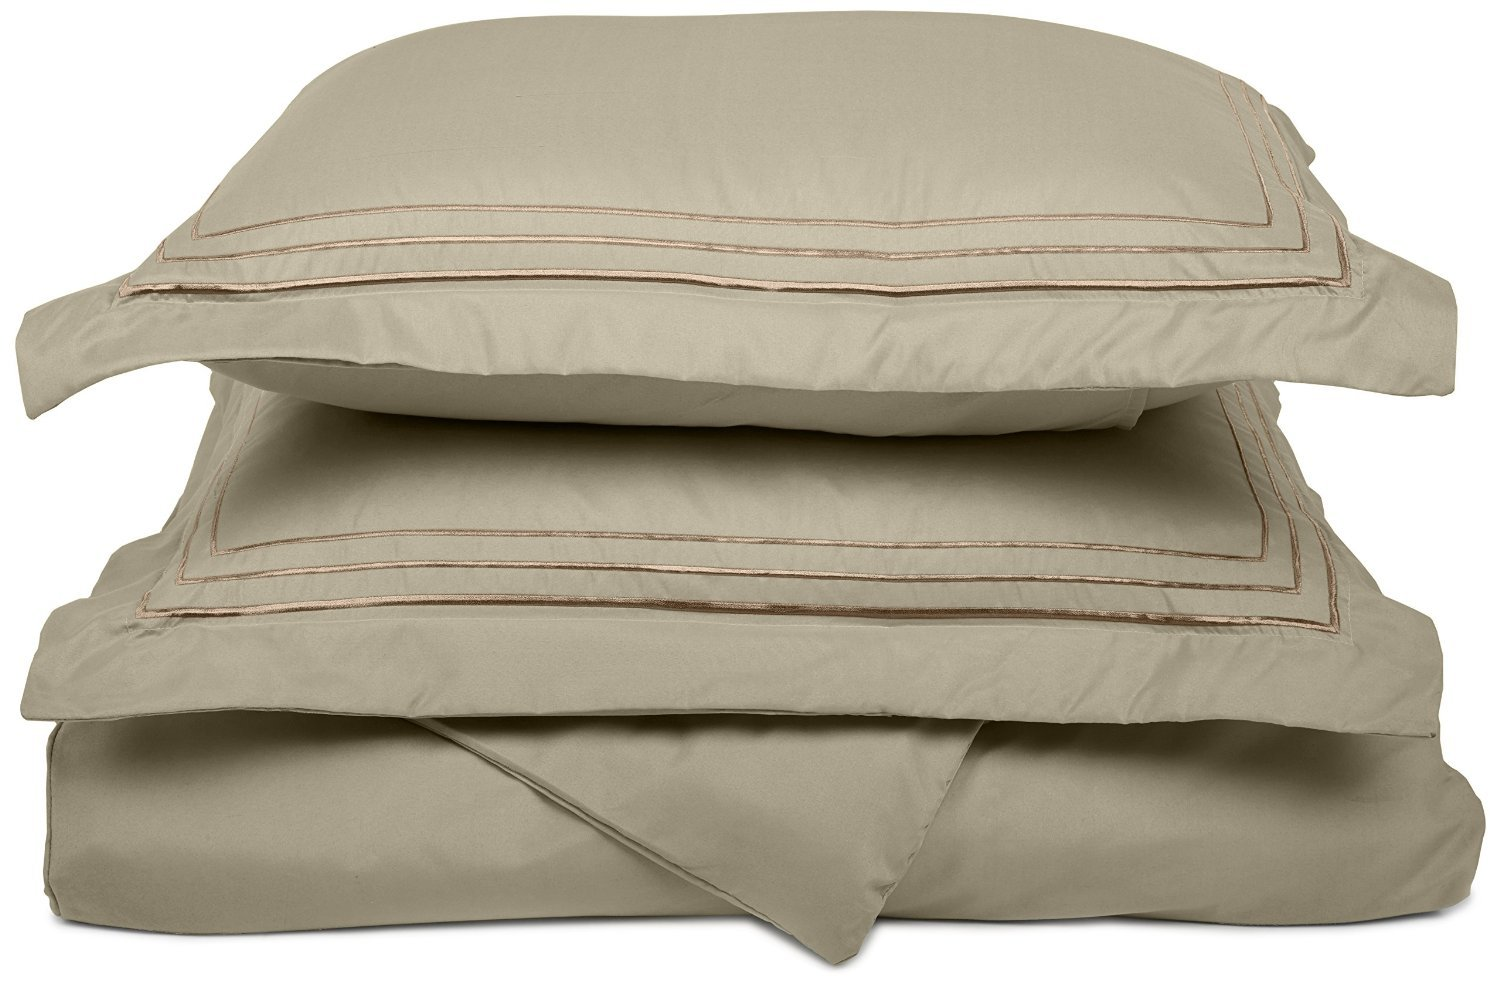 Super Soft Light Weight, 100% Brushed Microfiber, Full/Queen, Wrinkle Resistant, Tan Duvet Cover with 3-Line Embroidered Pillowshams in Gift Box